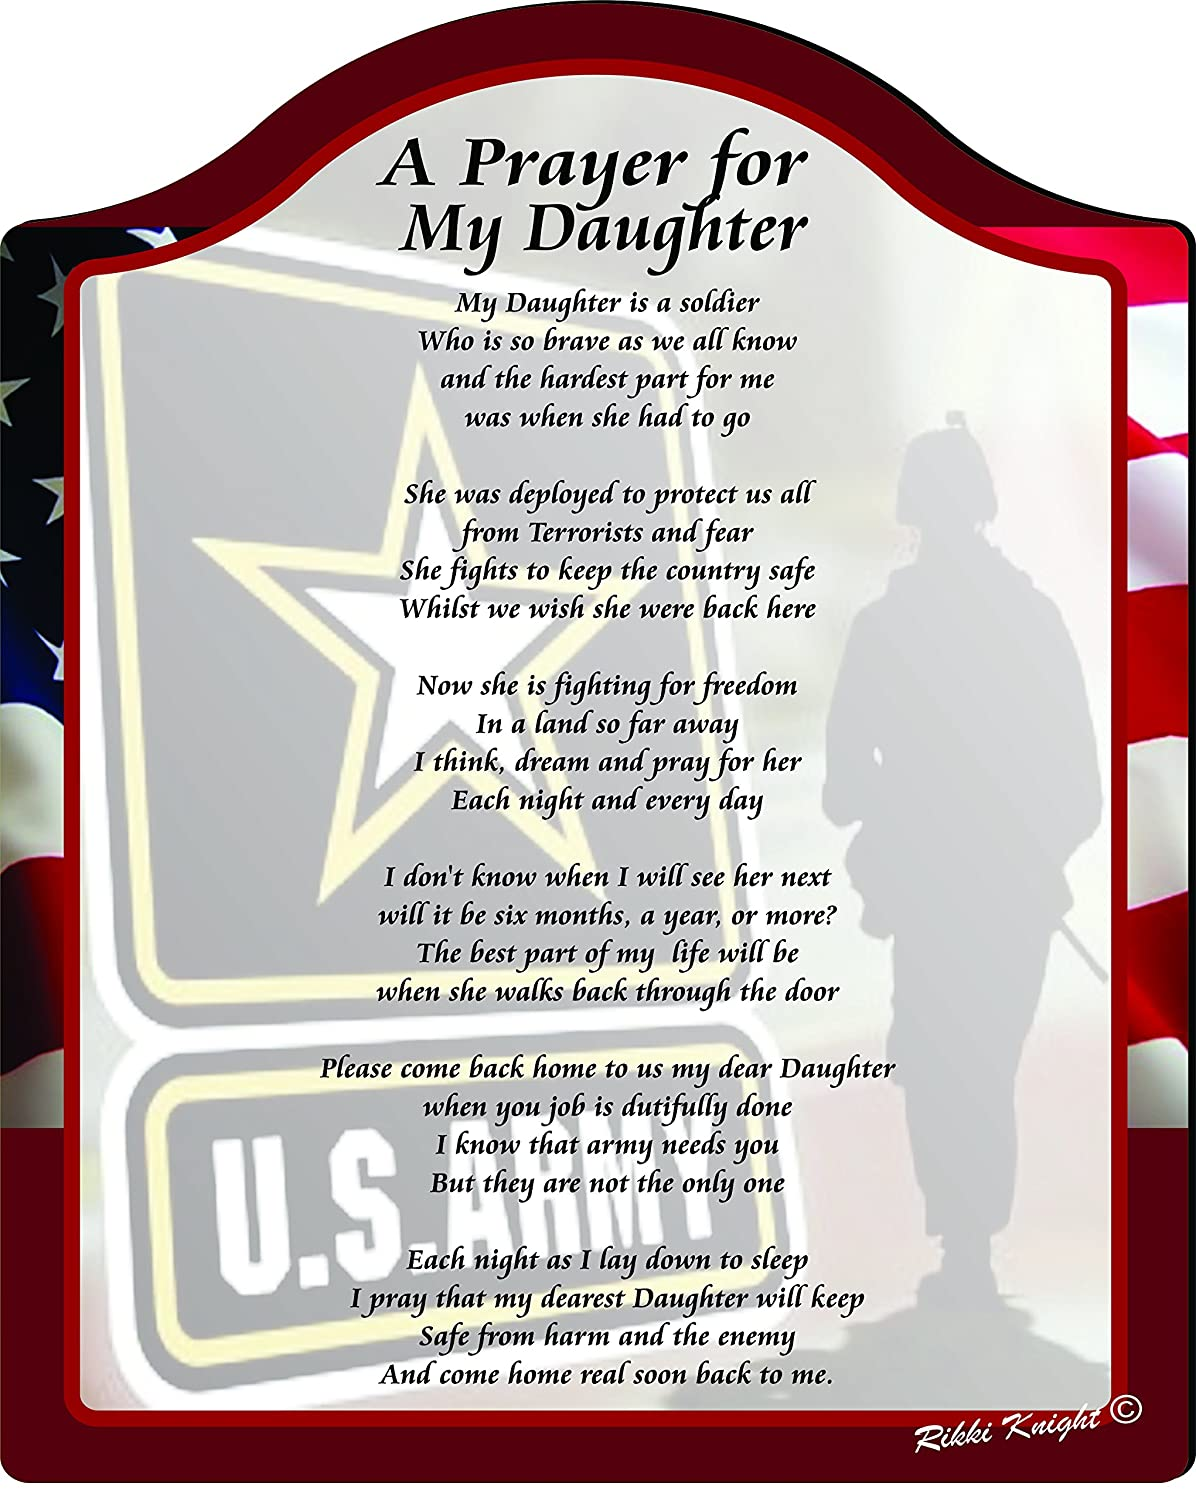 Amazon.com: A Prayer for my daughter the Soldier (US Army ...